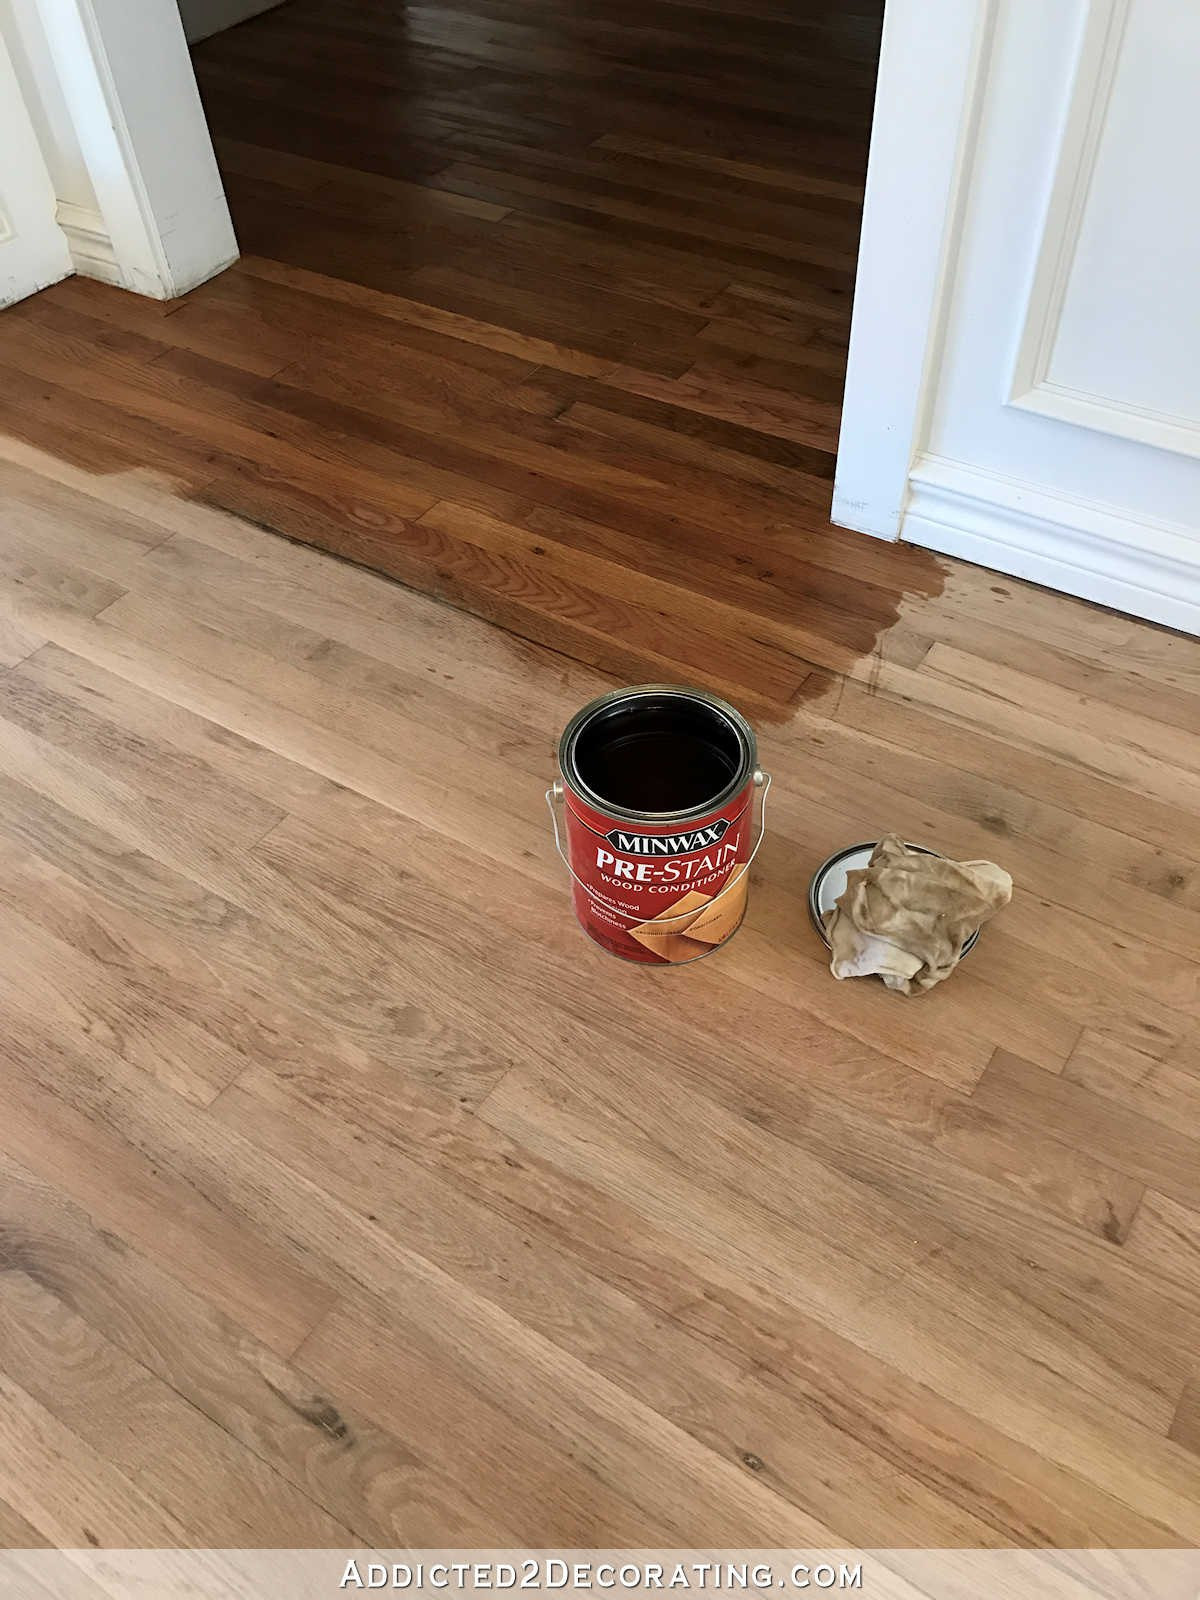 hardwood floor molding installation of decorative removing water stains from wood furniture at best cleaner with regard to decorative removing water stains from wood furniture at best cleaner to use hardwood floors podemosleganes